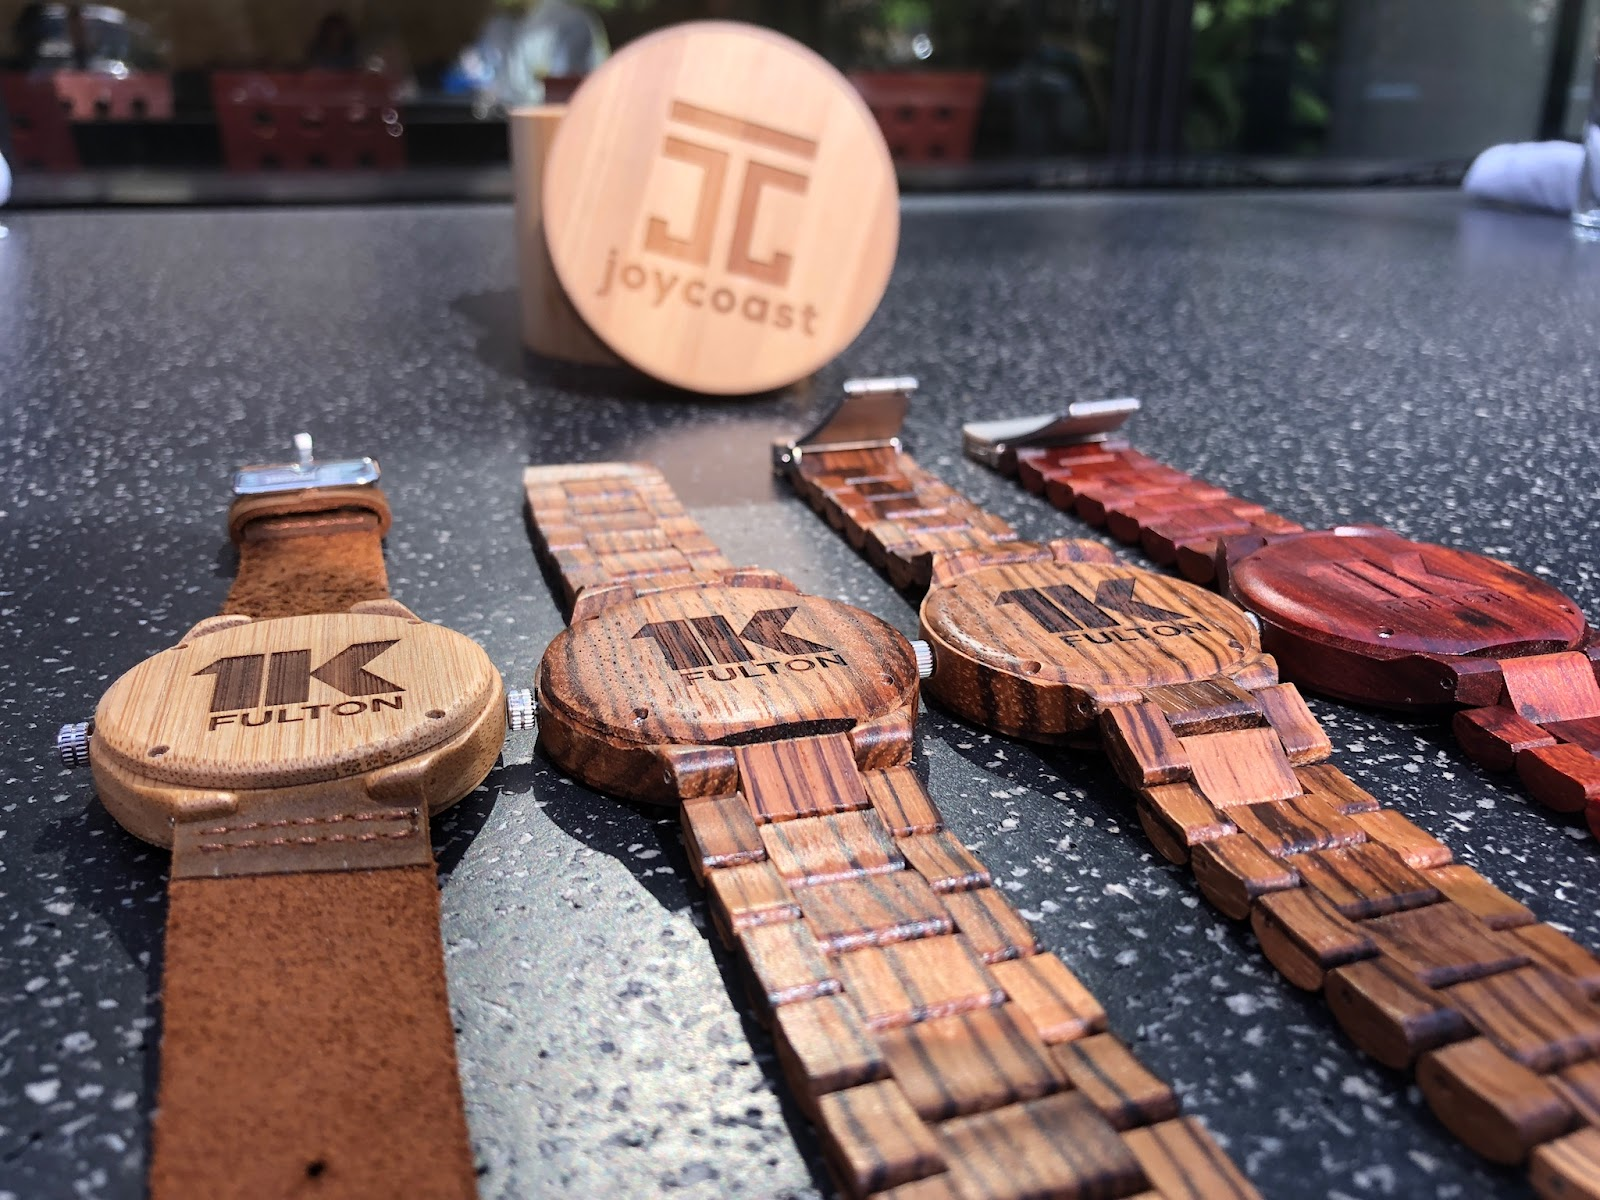 Various styles of wooden watches engraved with corporate name and logo. Note wooden piece engraved with Joycoast name and logo in background.